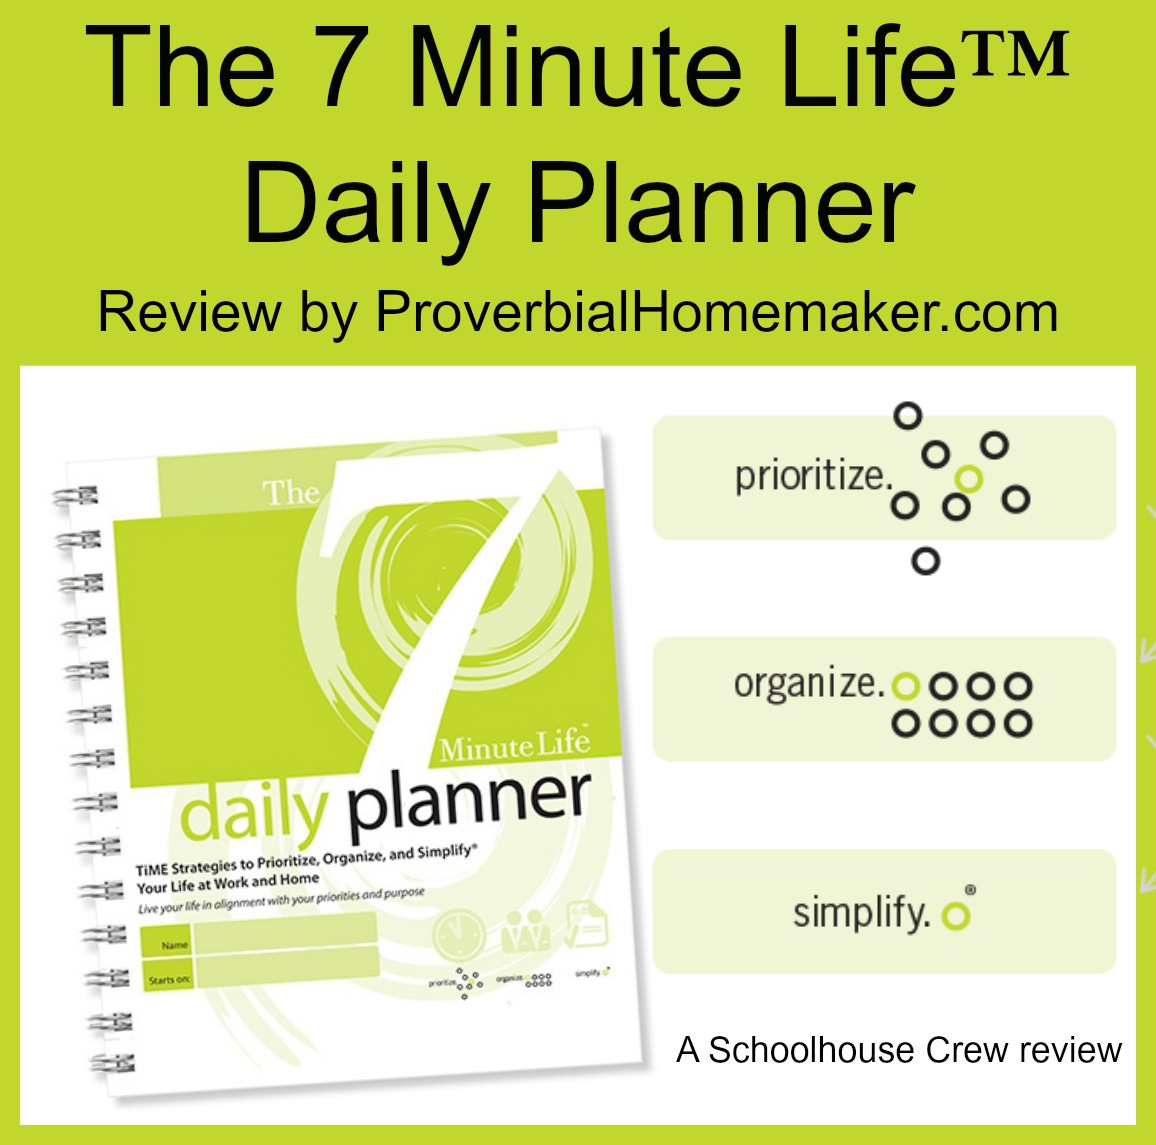 The 7 Minute Life Daily Planner